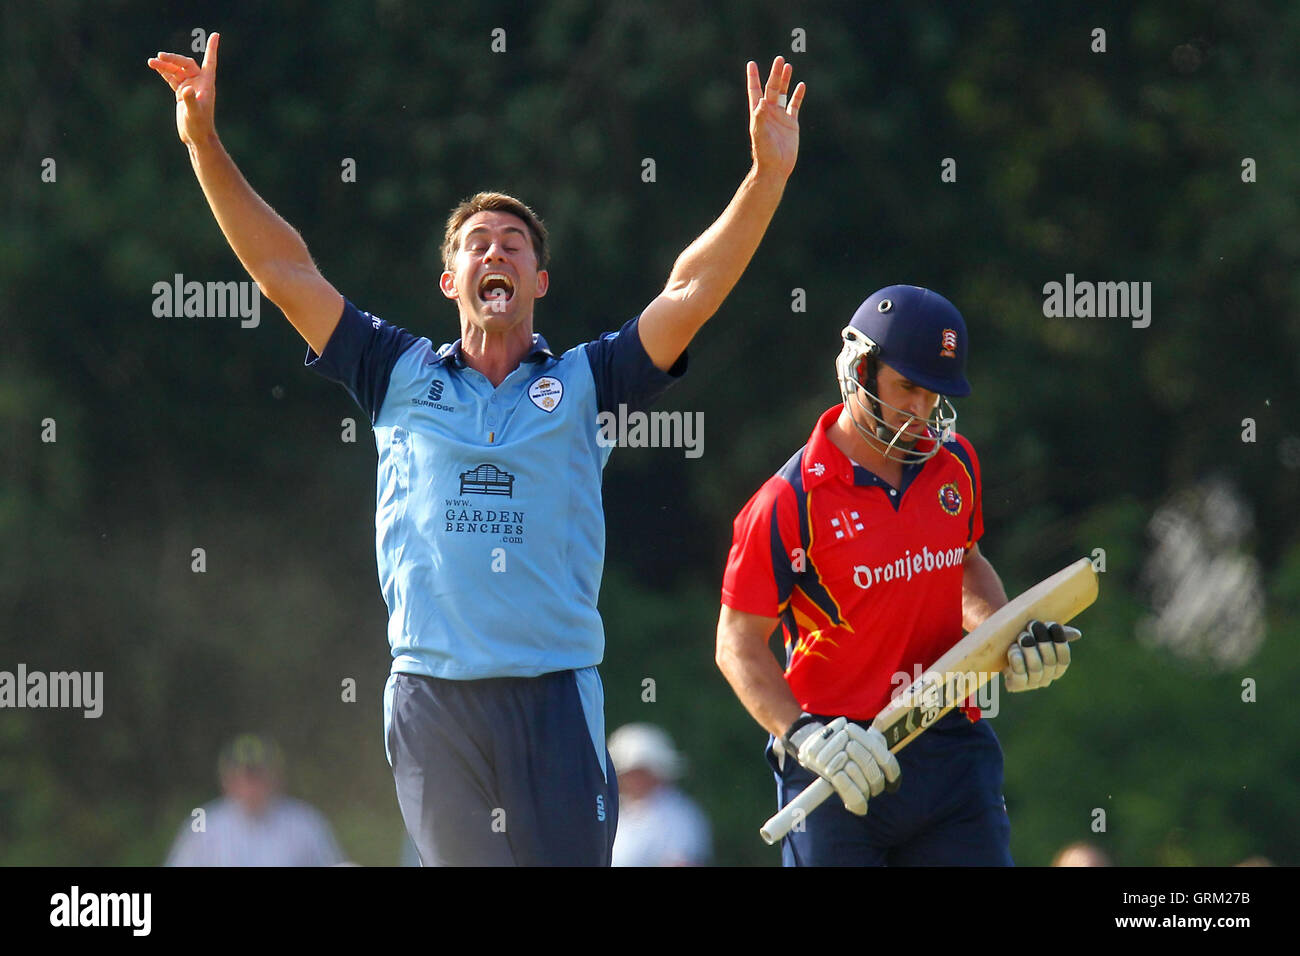 Tim Groenewald of Derbyshire claims the wicket of Ryan ten Doeschate - Derbyshire Falcons vs Essex Eagles - Yorkshire - Stock Image